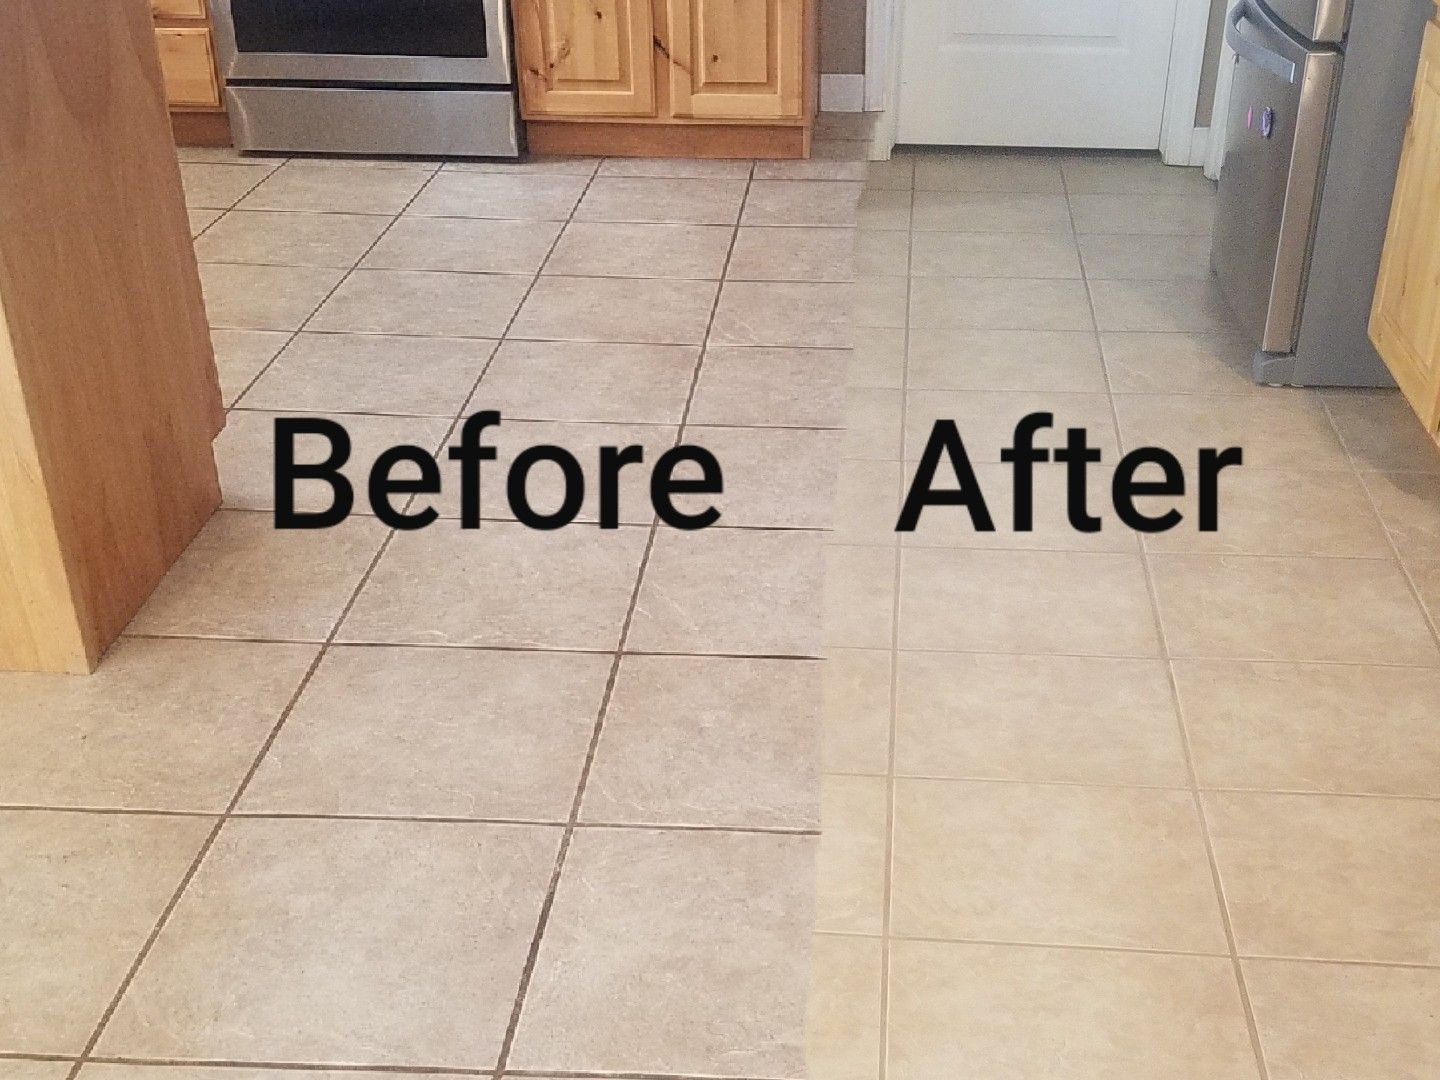 How To Clean Tile Without Harsh Chemicals Or Residue